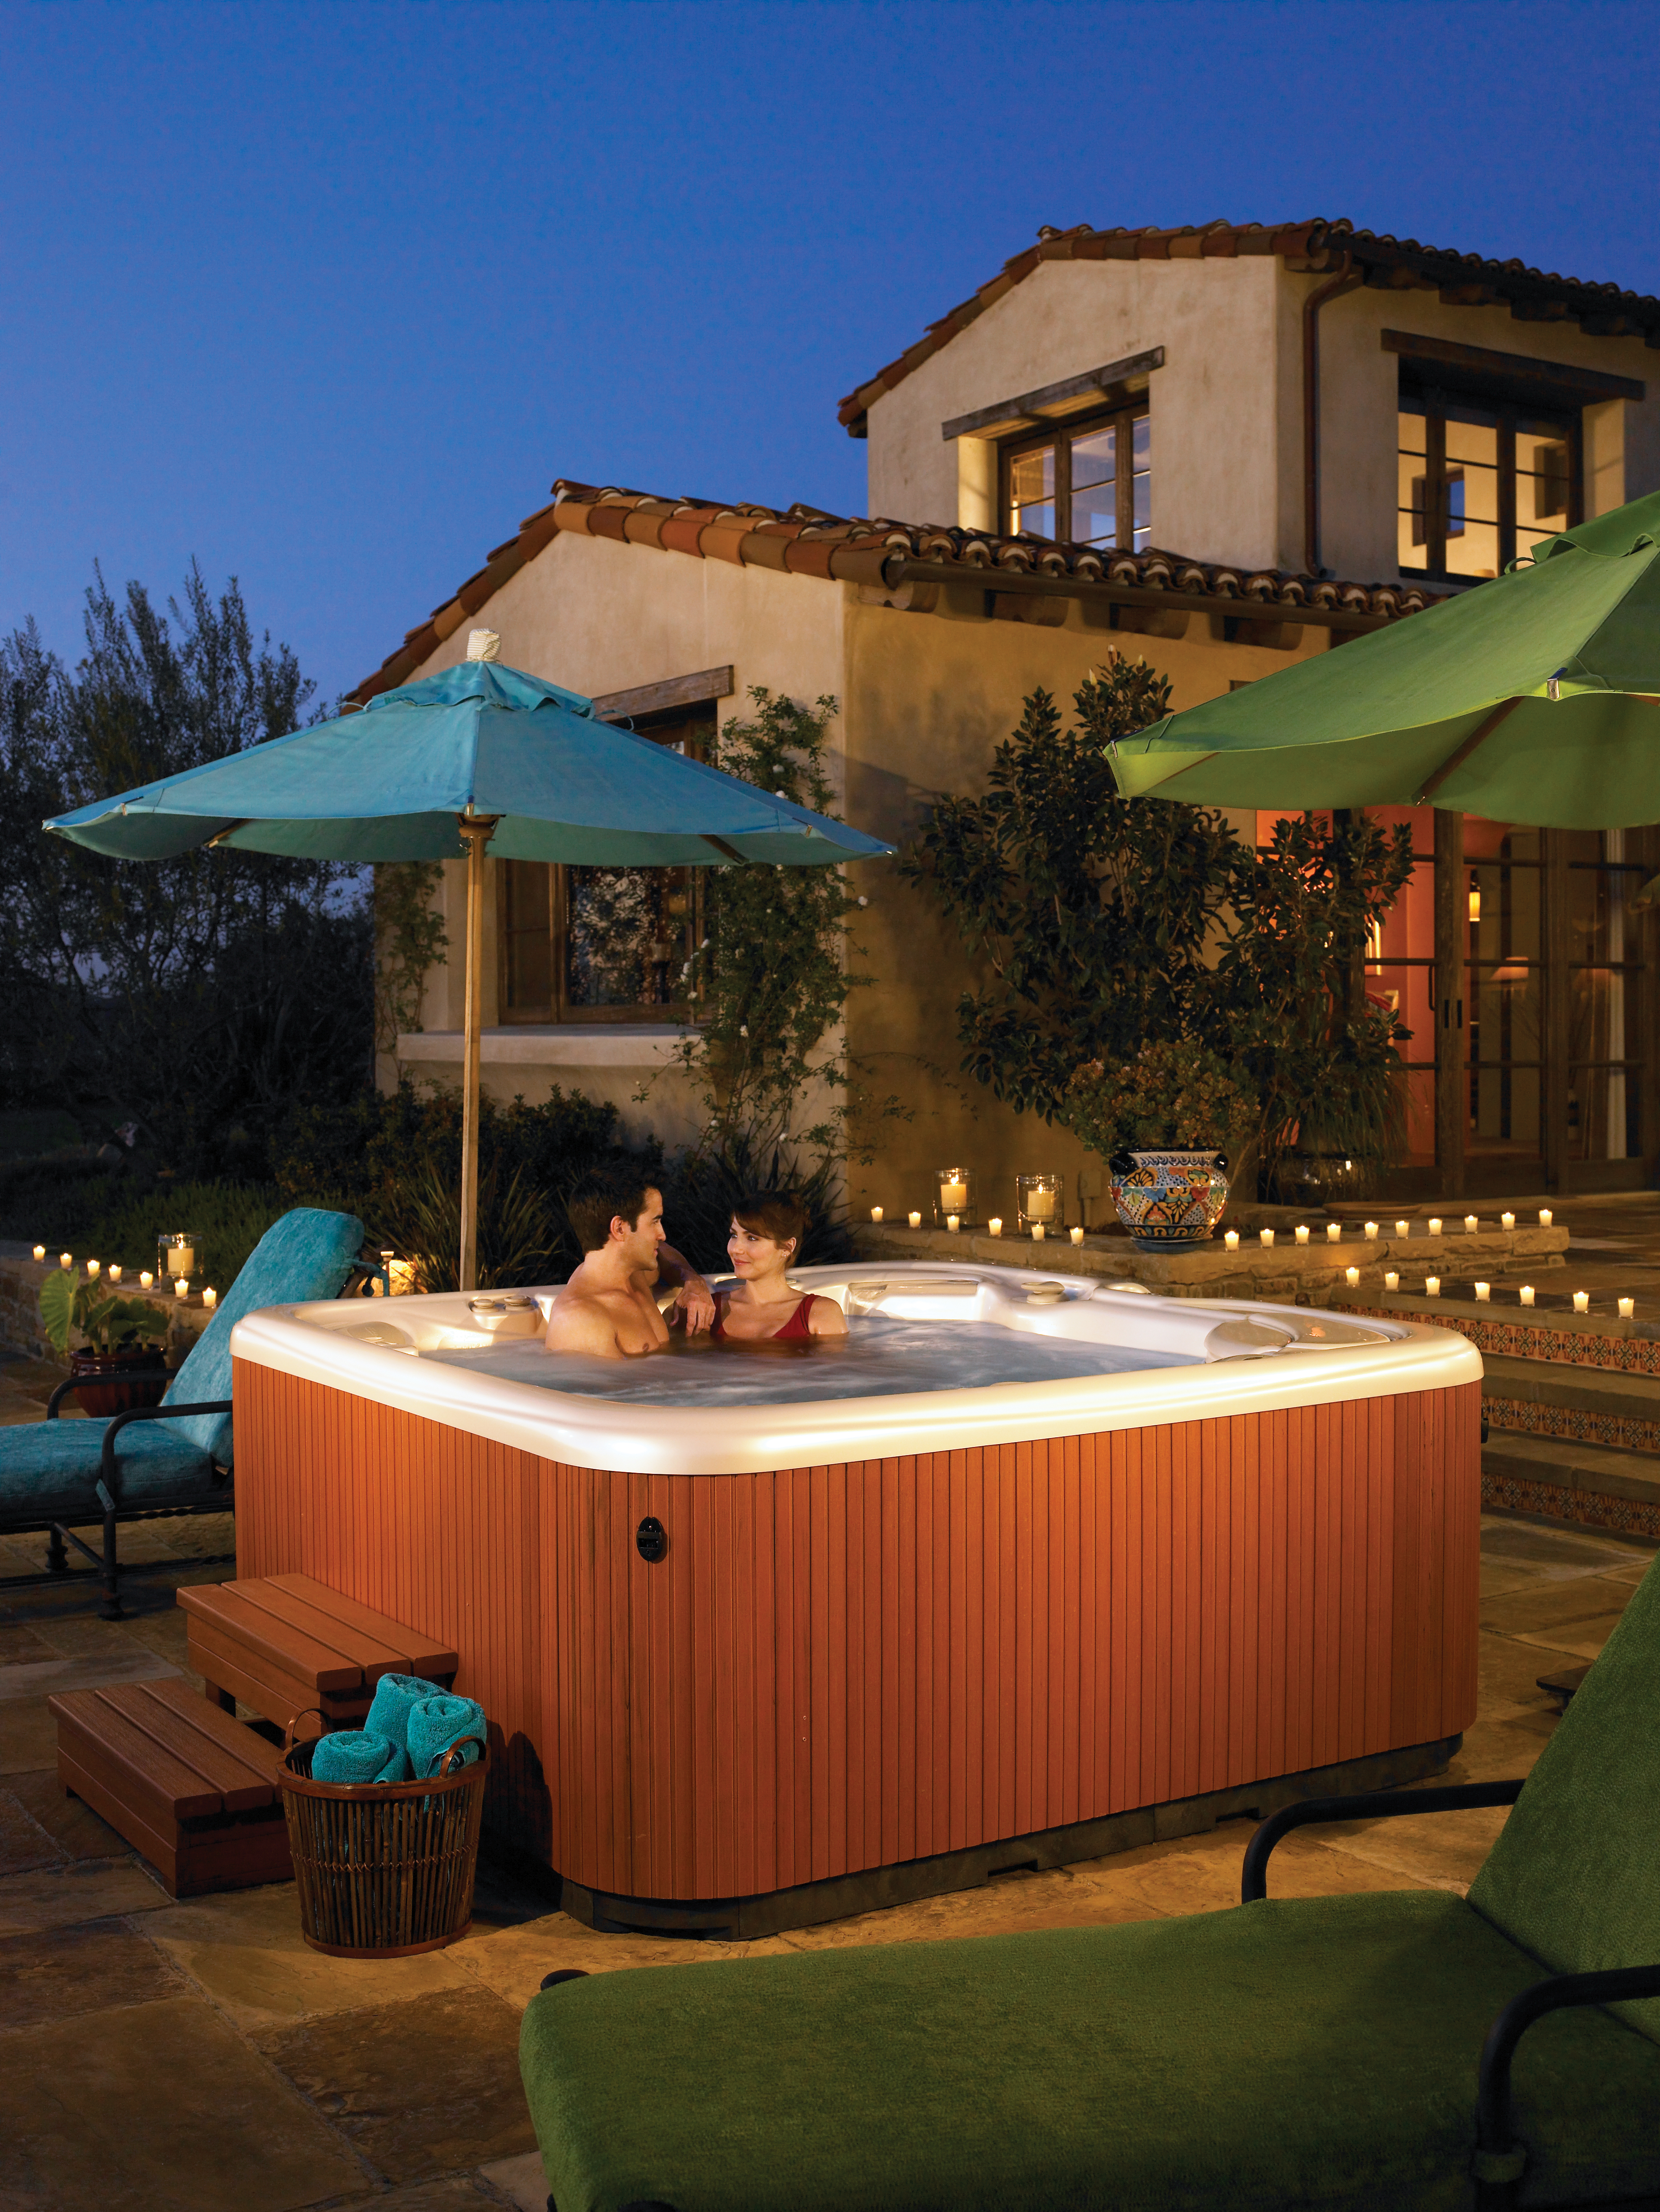 15 Ways To Relax In Your Hot Tub